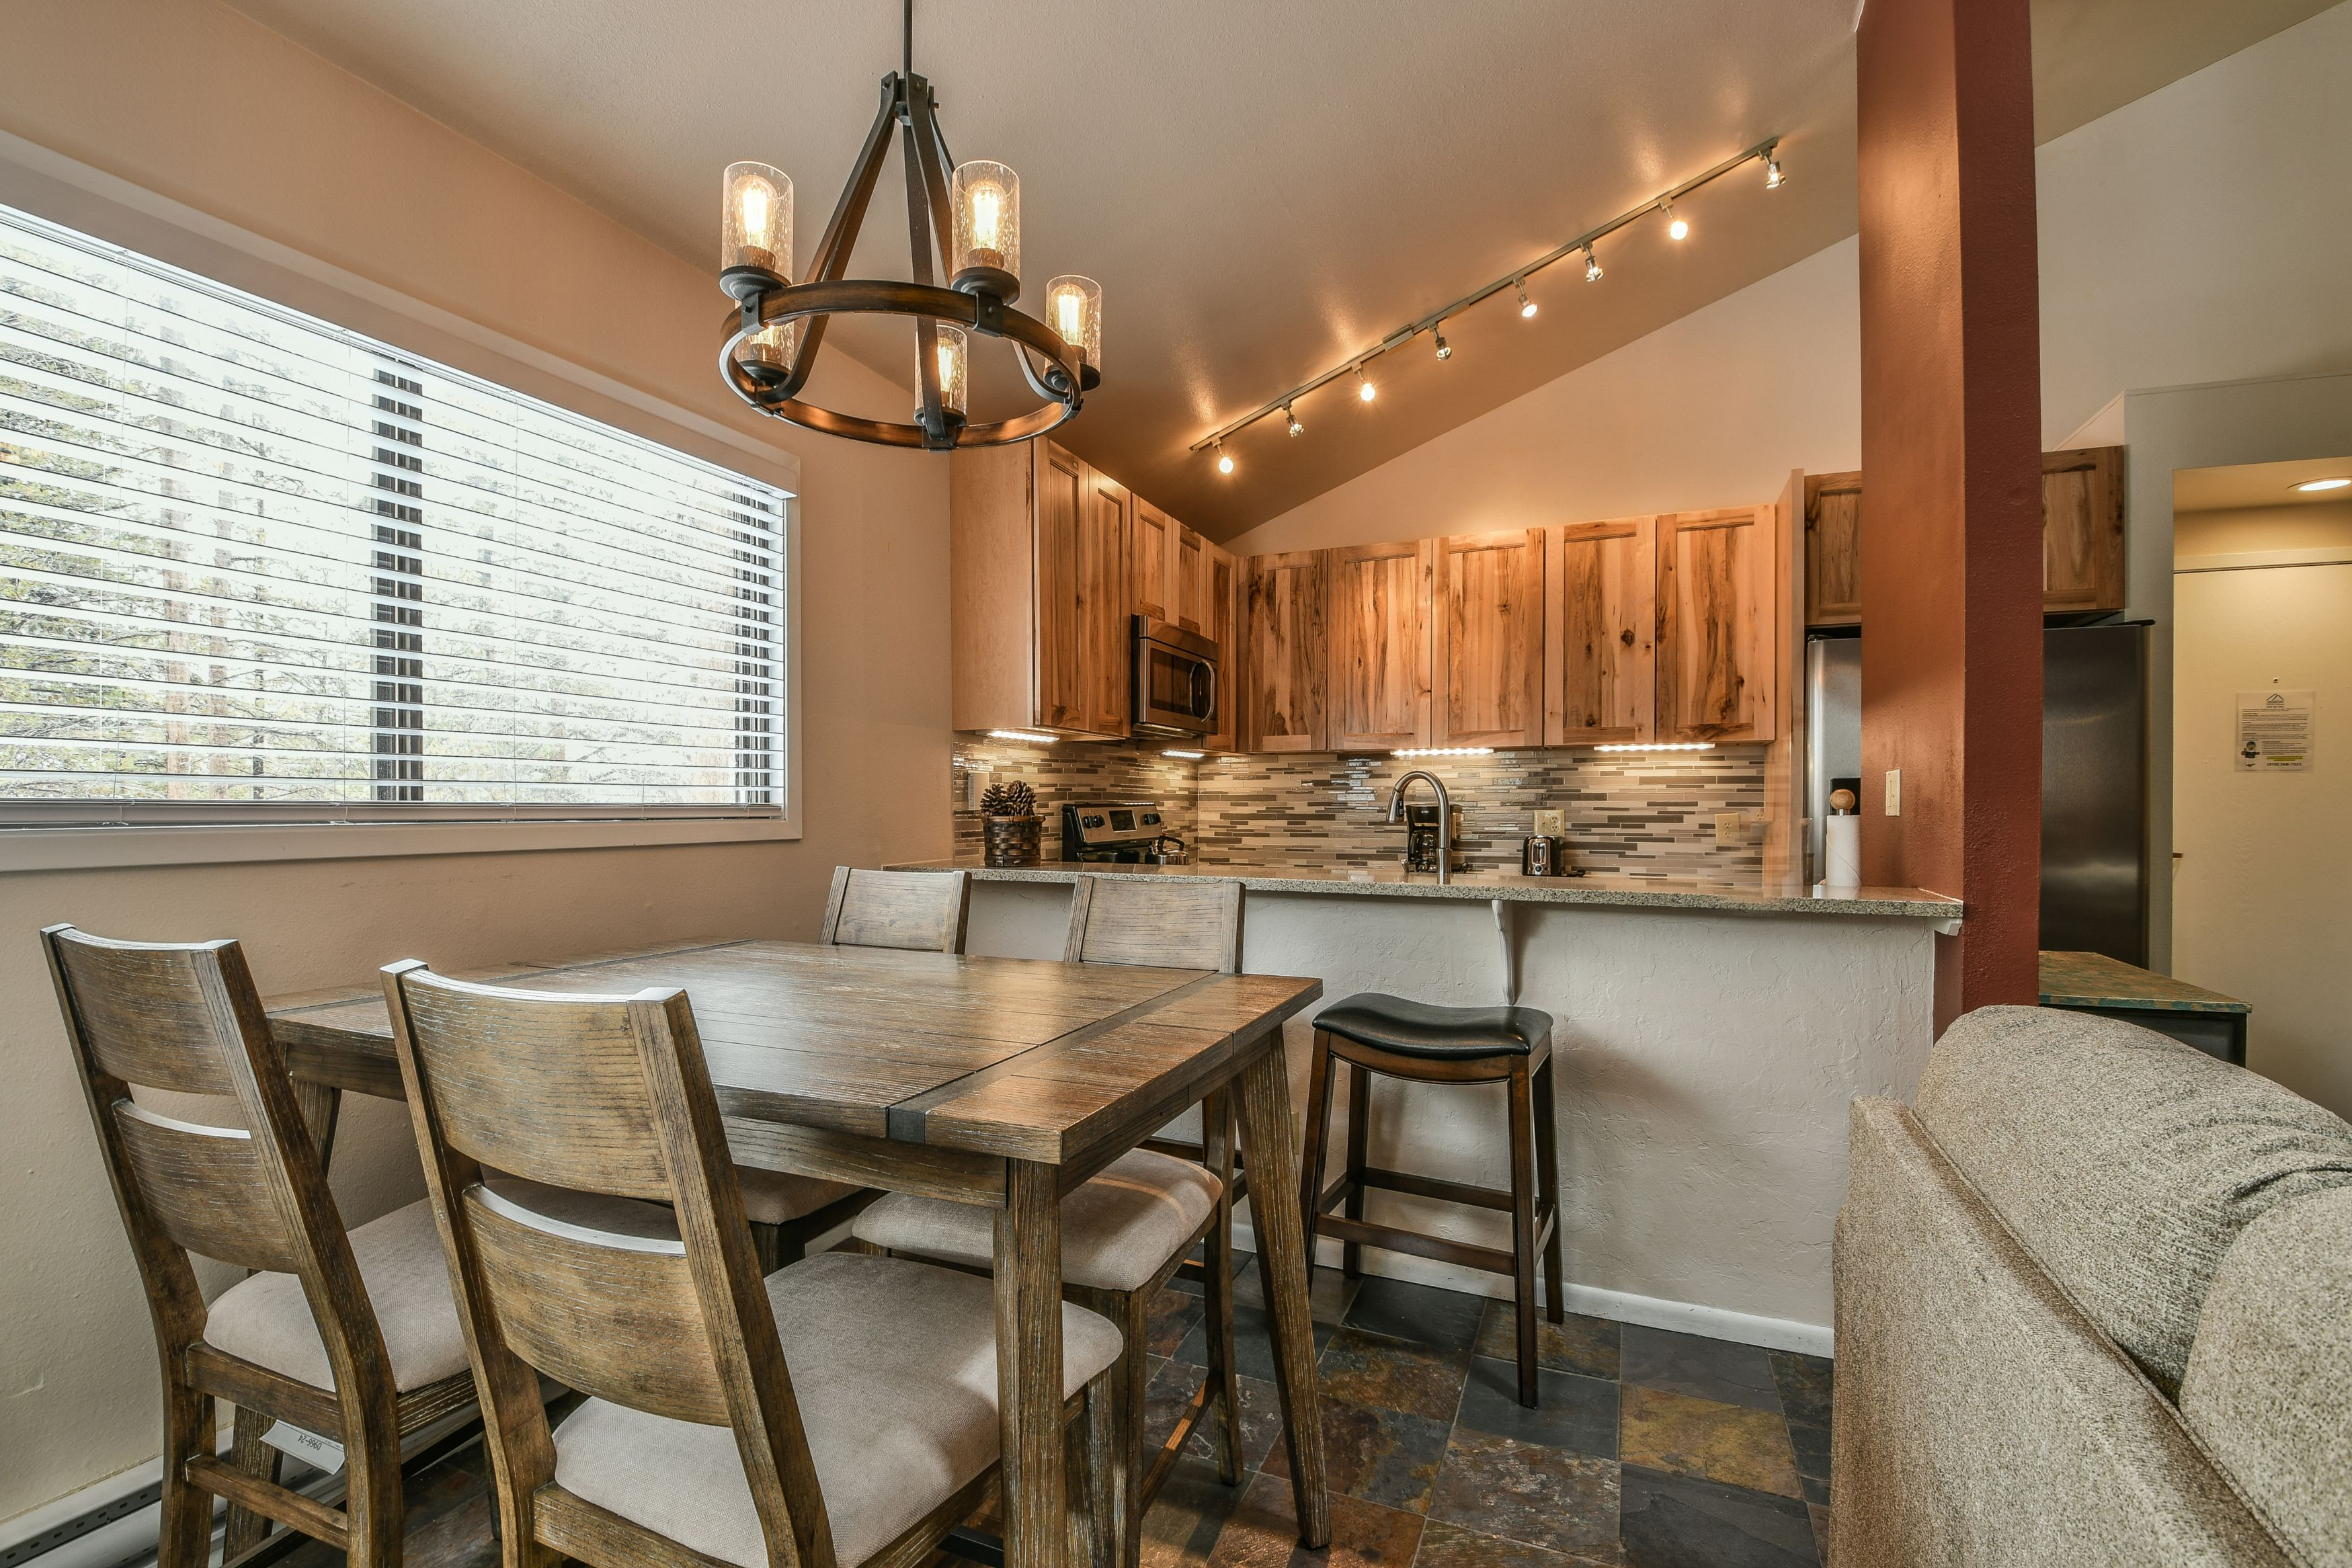 Dining room with stainless wooden table to enjoy meals